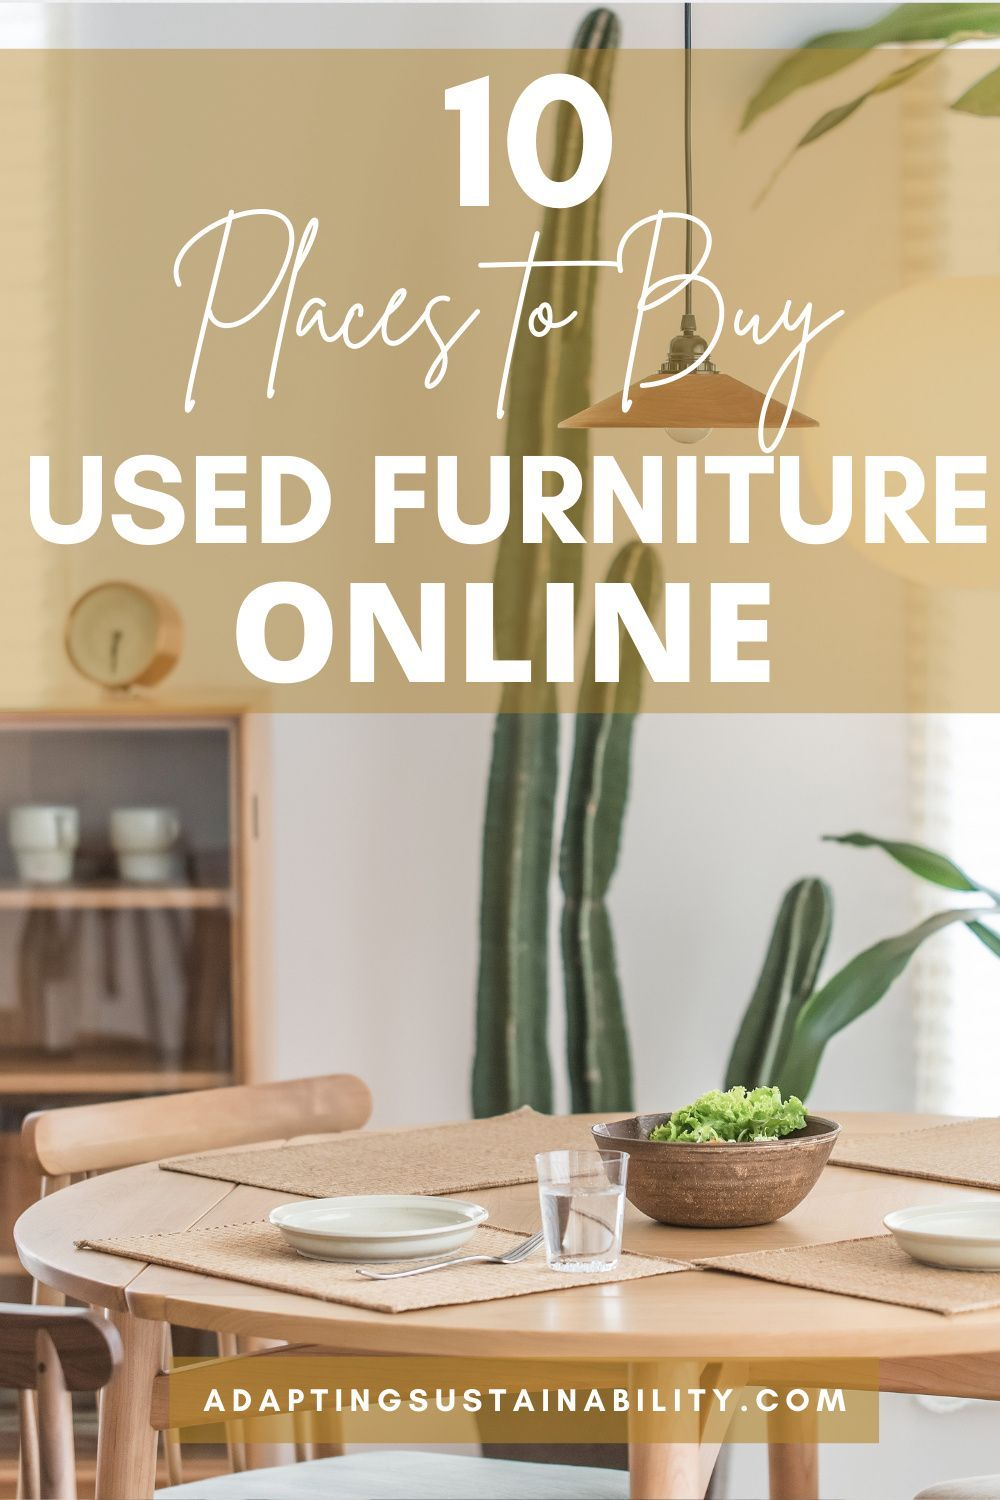 The Best 10 Places To Buy Used Furniture Online Adapting Sustainability In 2021 Buy Used Furniture Upcycled Home Decor Diy Kitchen Decor